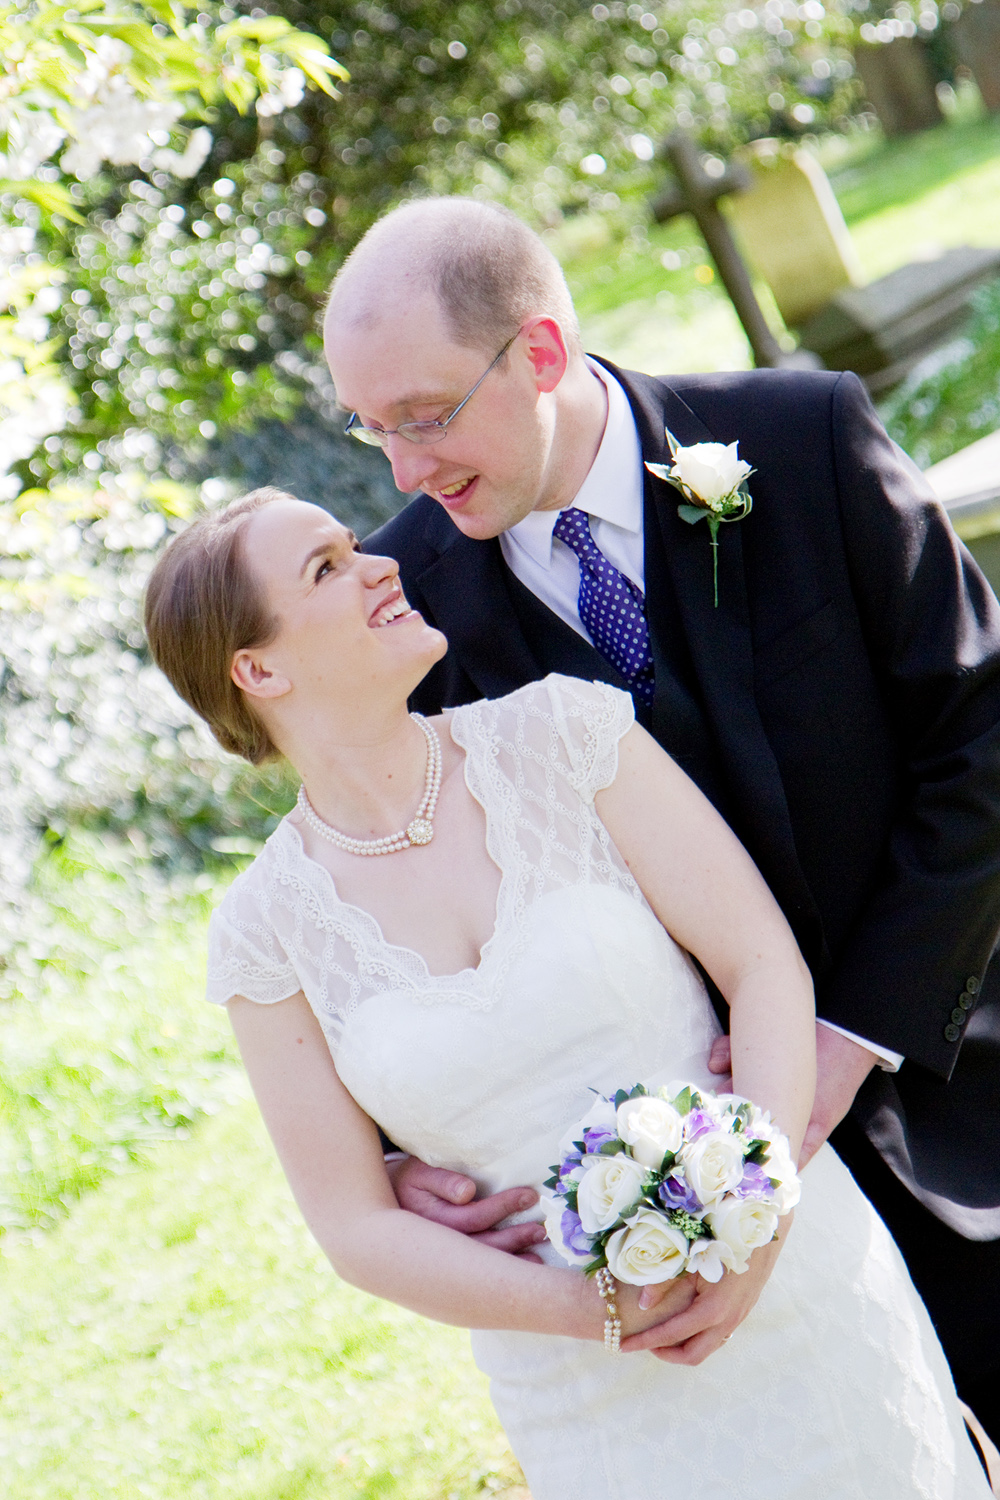 Natural Wedding Photography, Helen England Photography, Kent, U.K